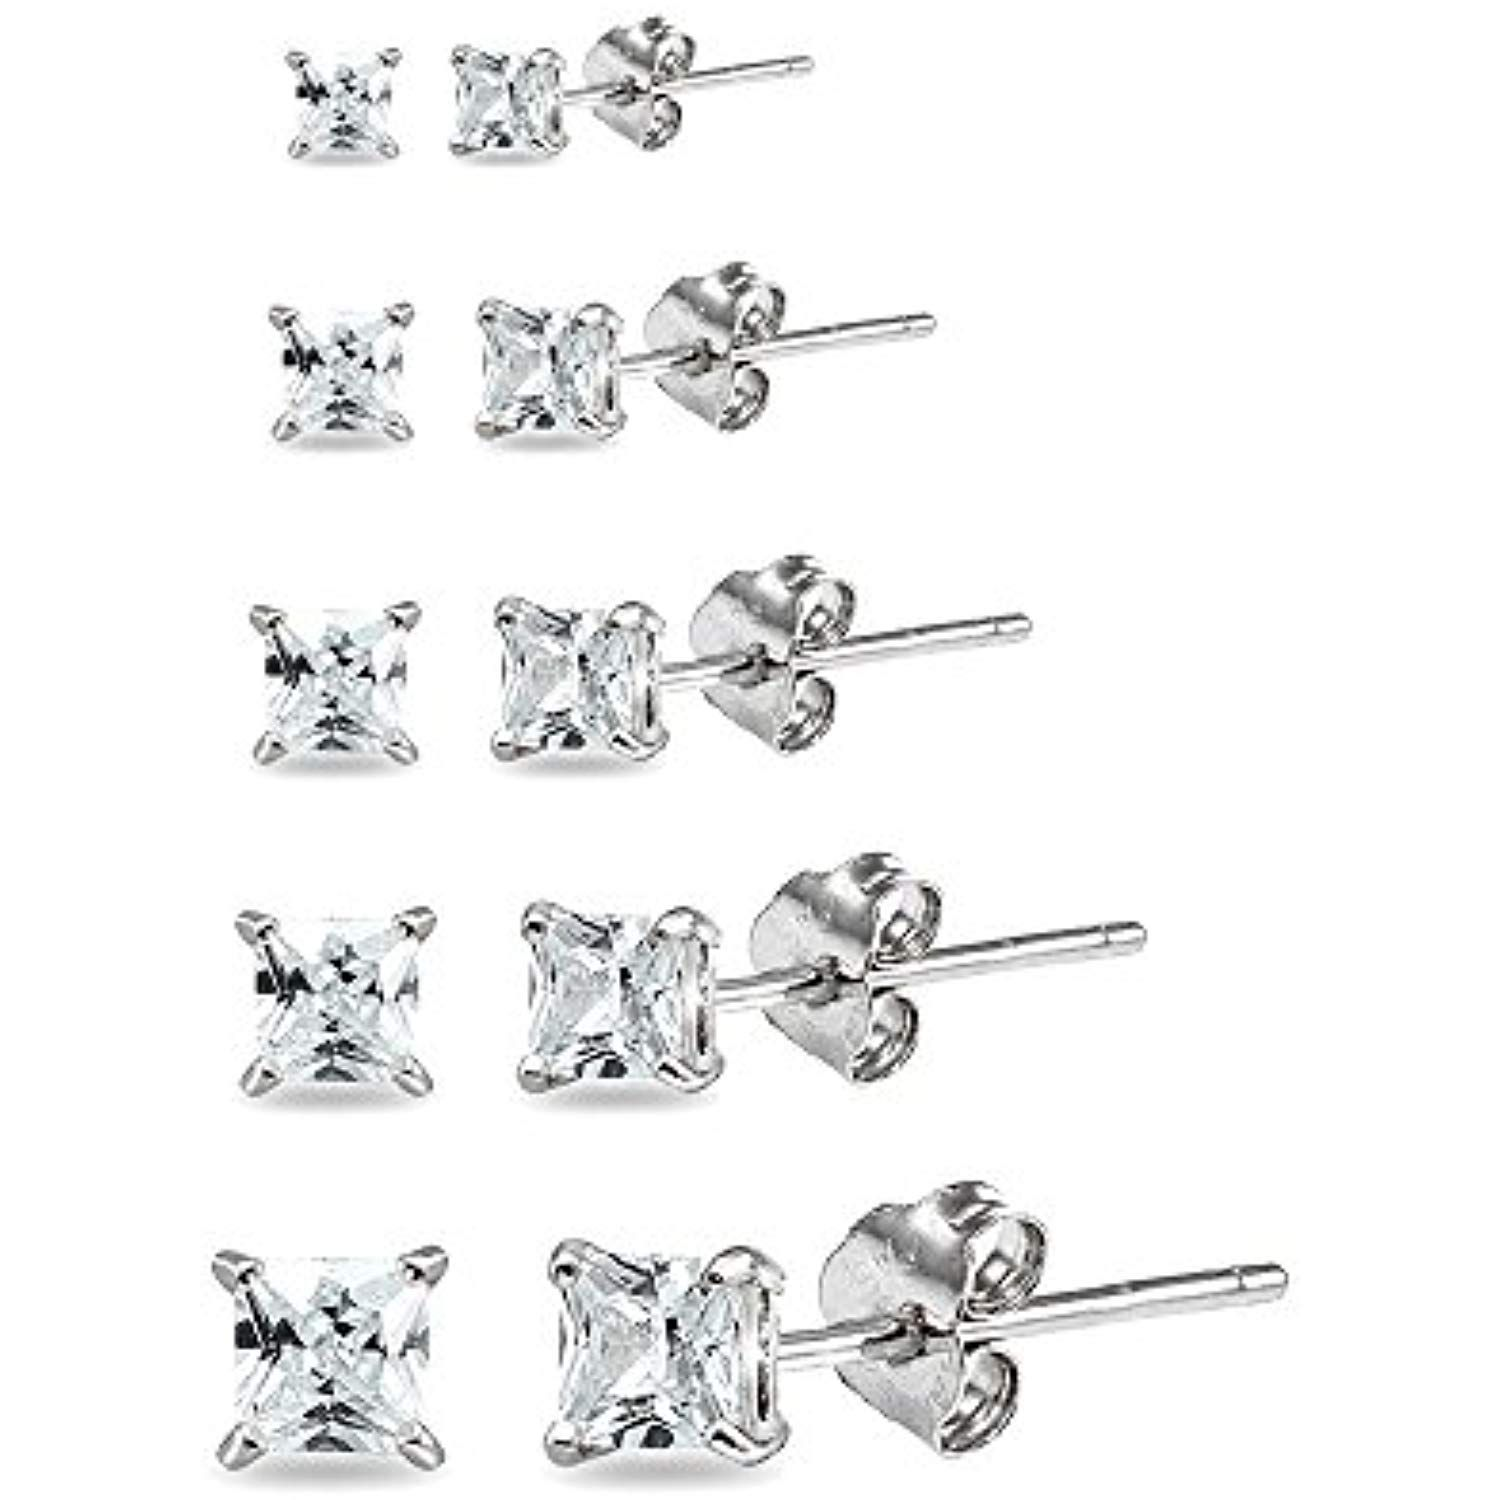 d17c71139 5 Pair Set Sterling Silver Cubic Zirconia Princess-Cut Square Stud Earrings,  2mm 3mm 4mm 5mm 6mm ** Learn more by visiting the image link.